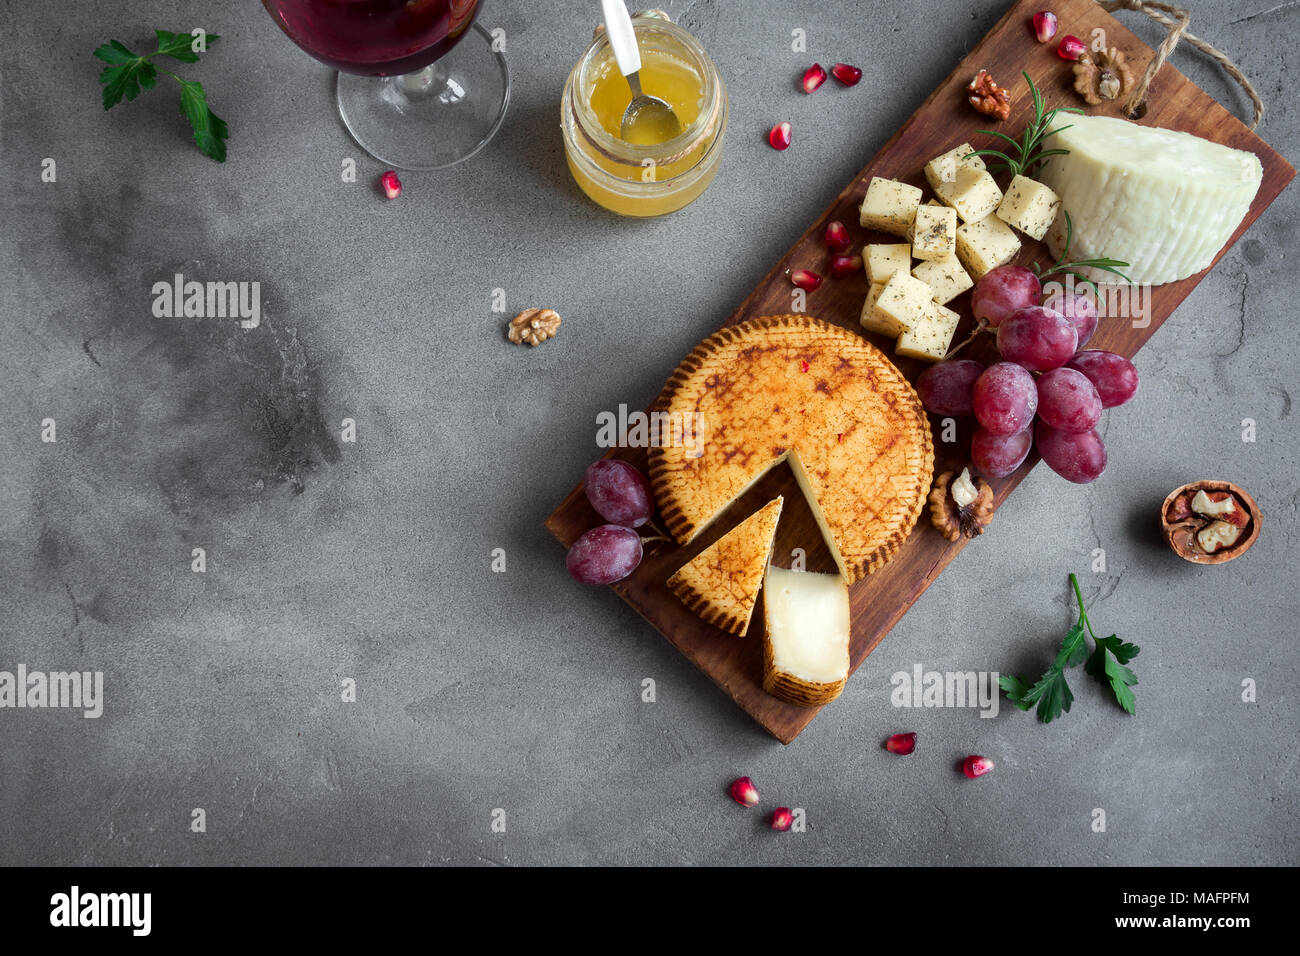 Cheese platter with assorted cheeses, grapes, nuts over concrete background, copy space. Italian cheese and fruit platter with honey and wine. - Stock Image